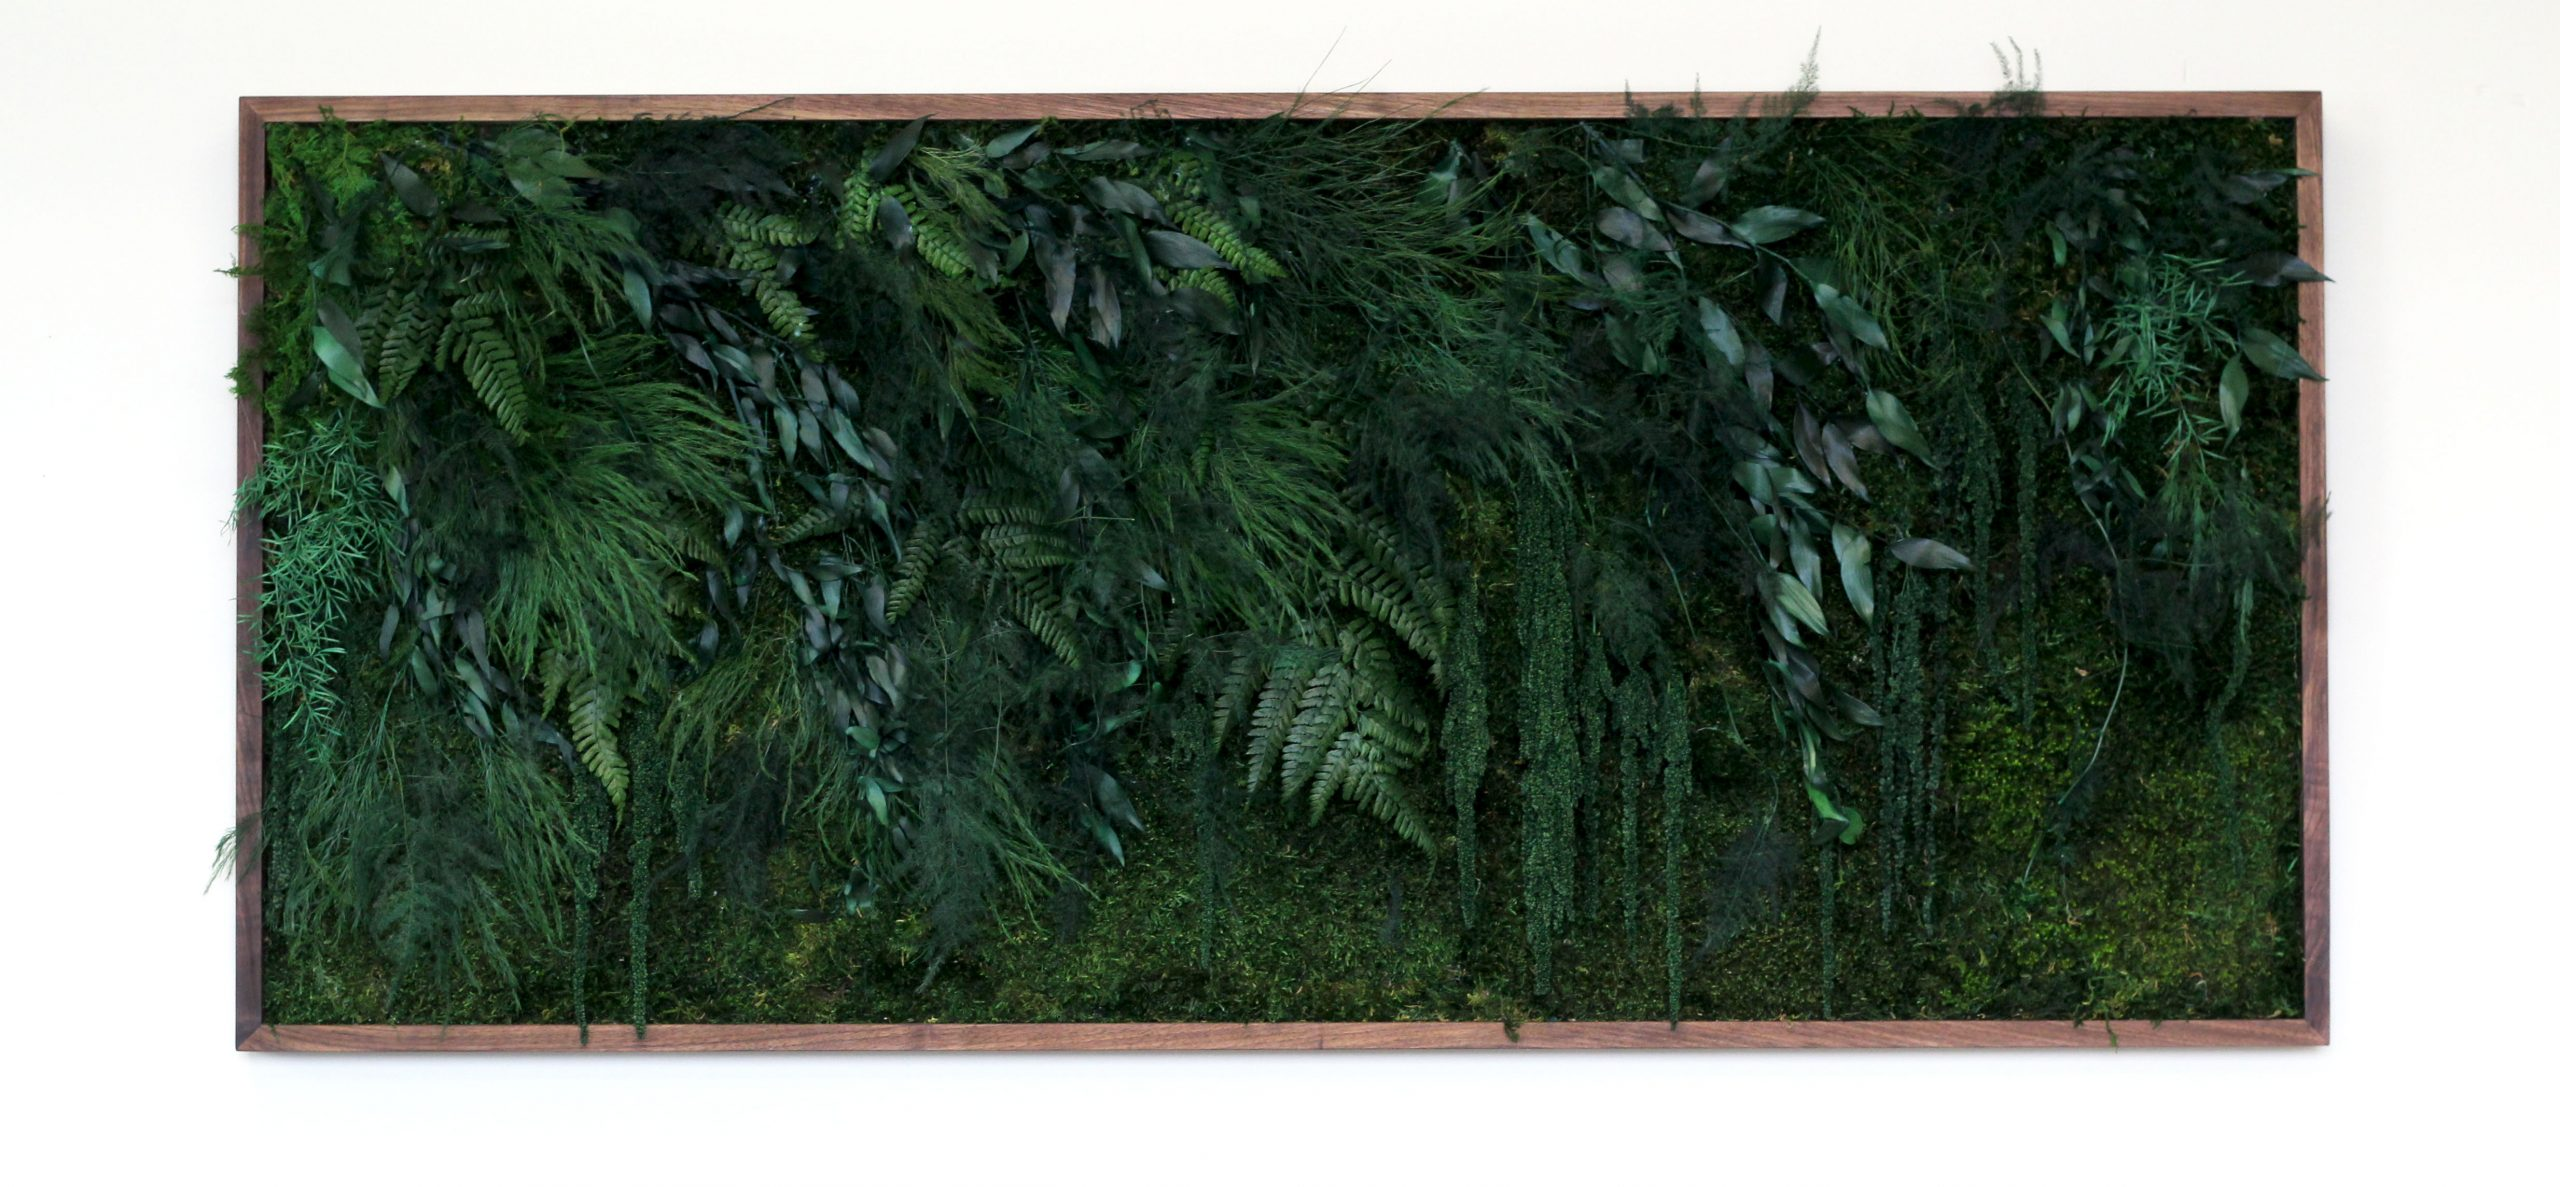 dark green preserved moss and grenery wall in dark wood frame on white wall, photo straight on